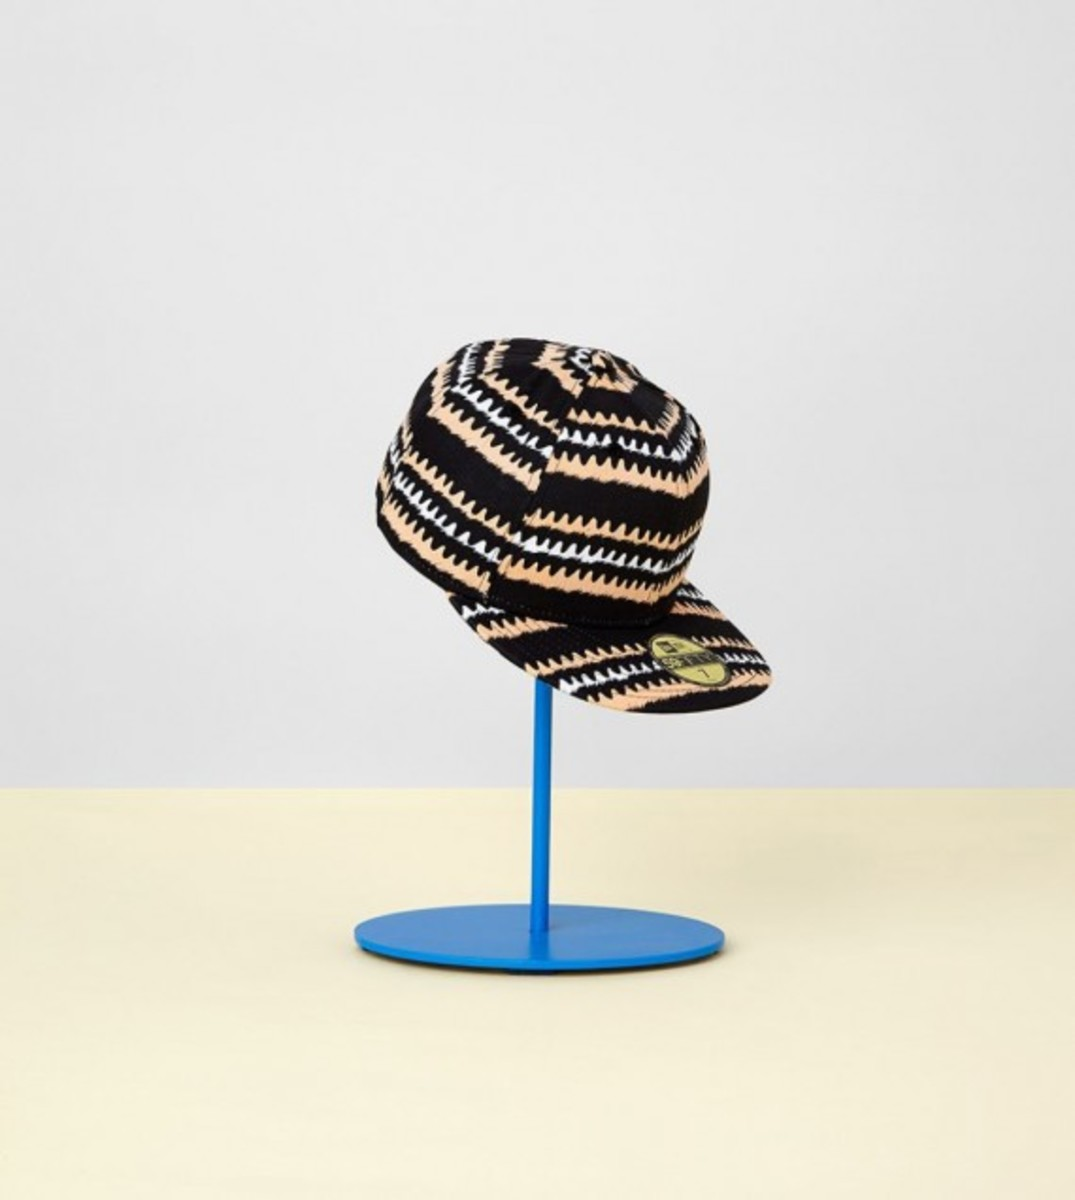 kenzo-new-era-spring-summer-2013-cap-collection-02